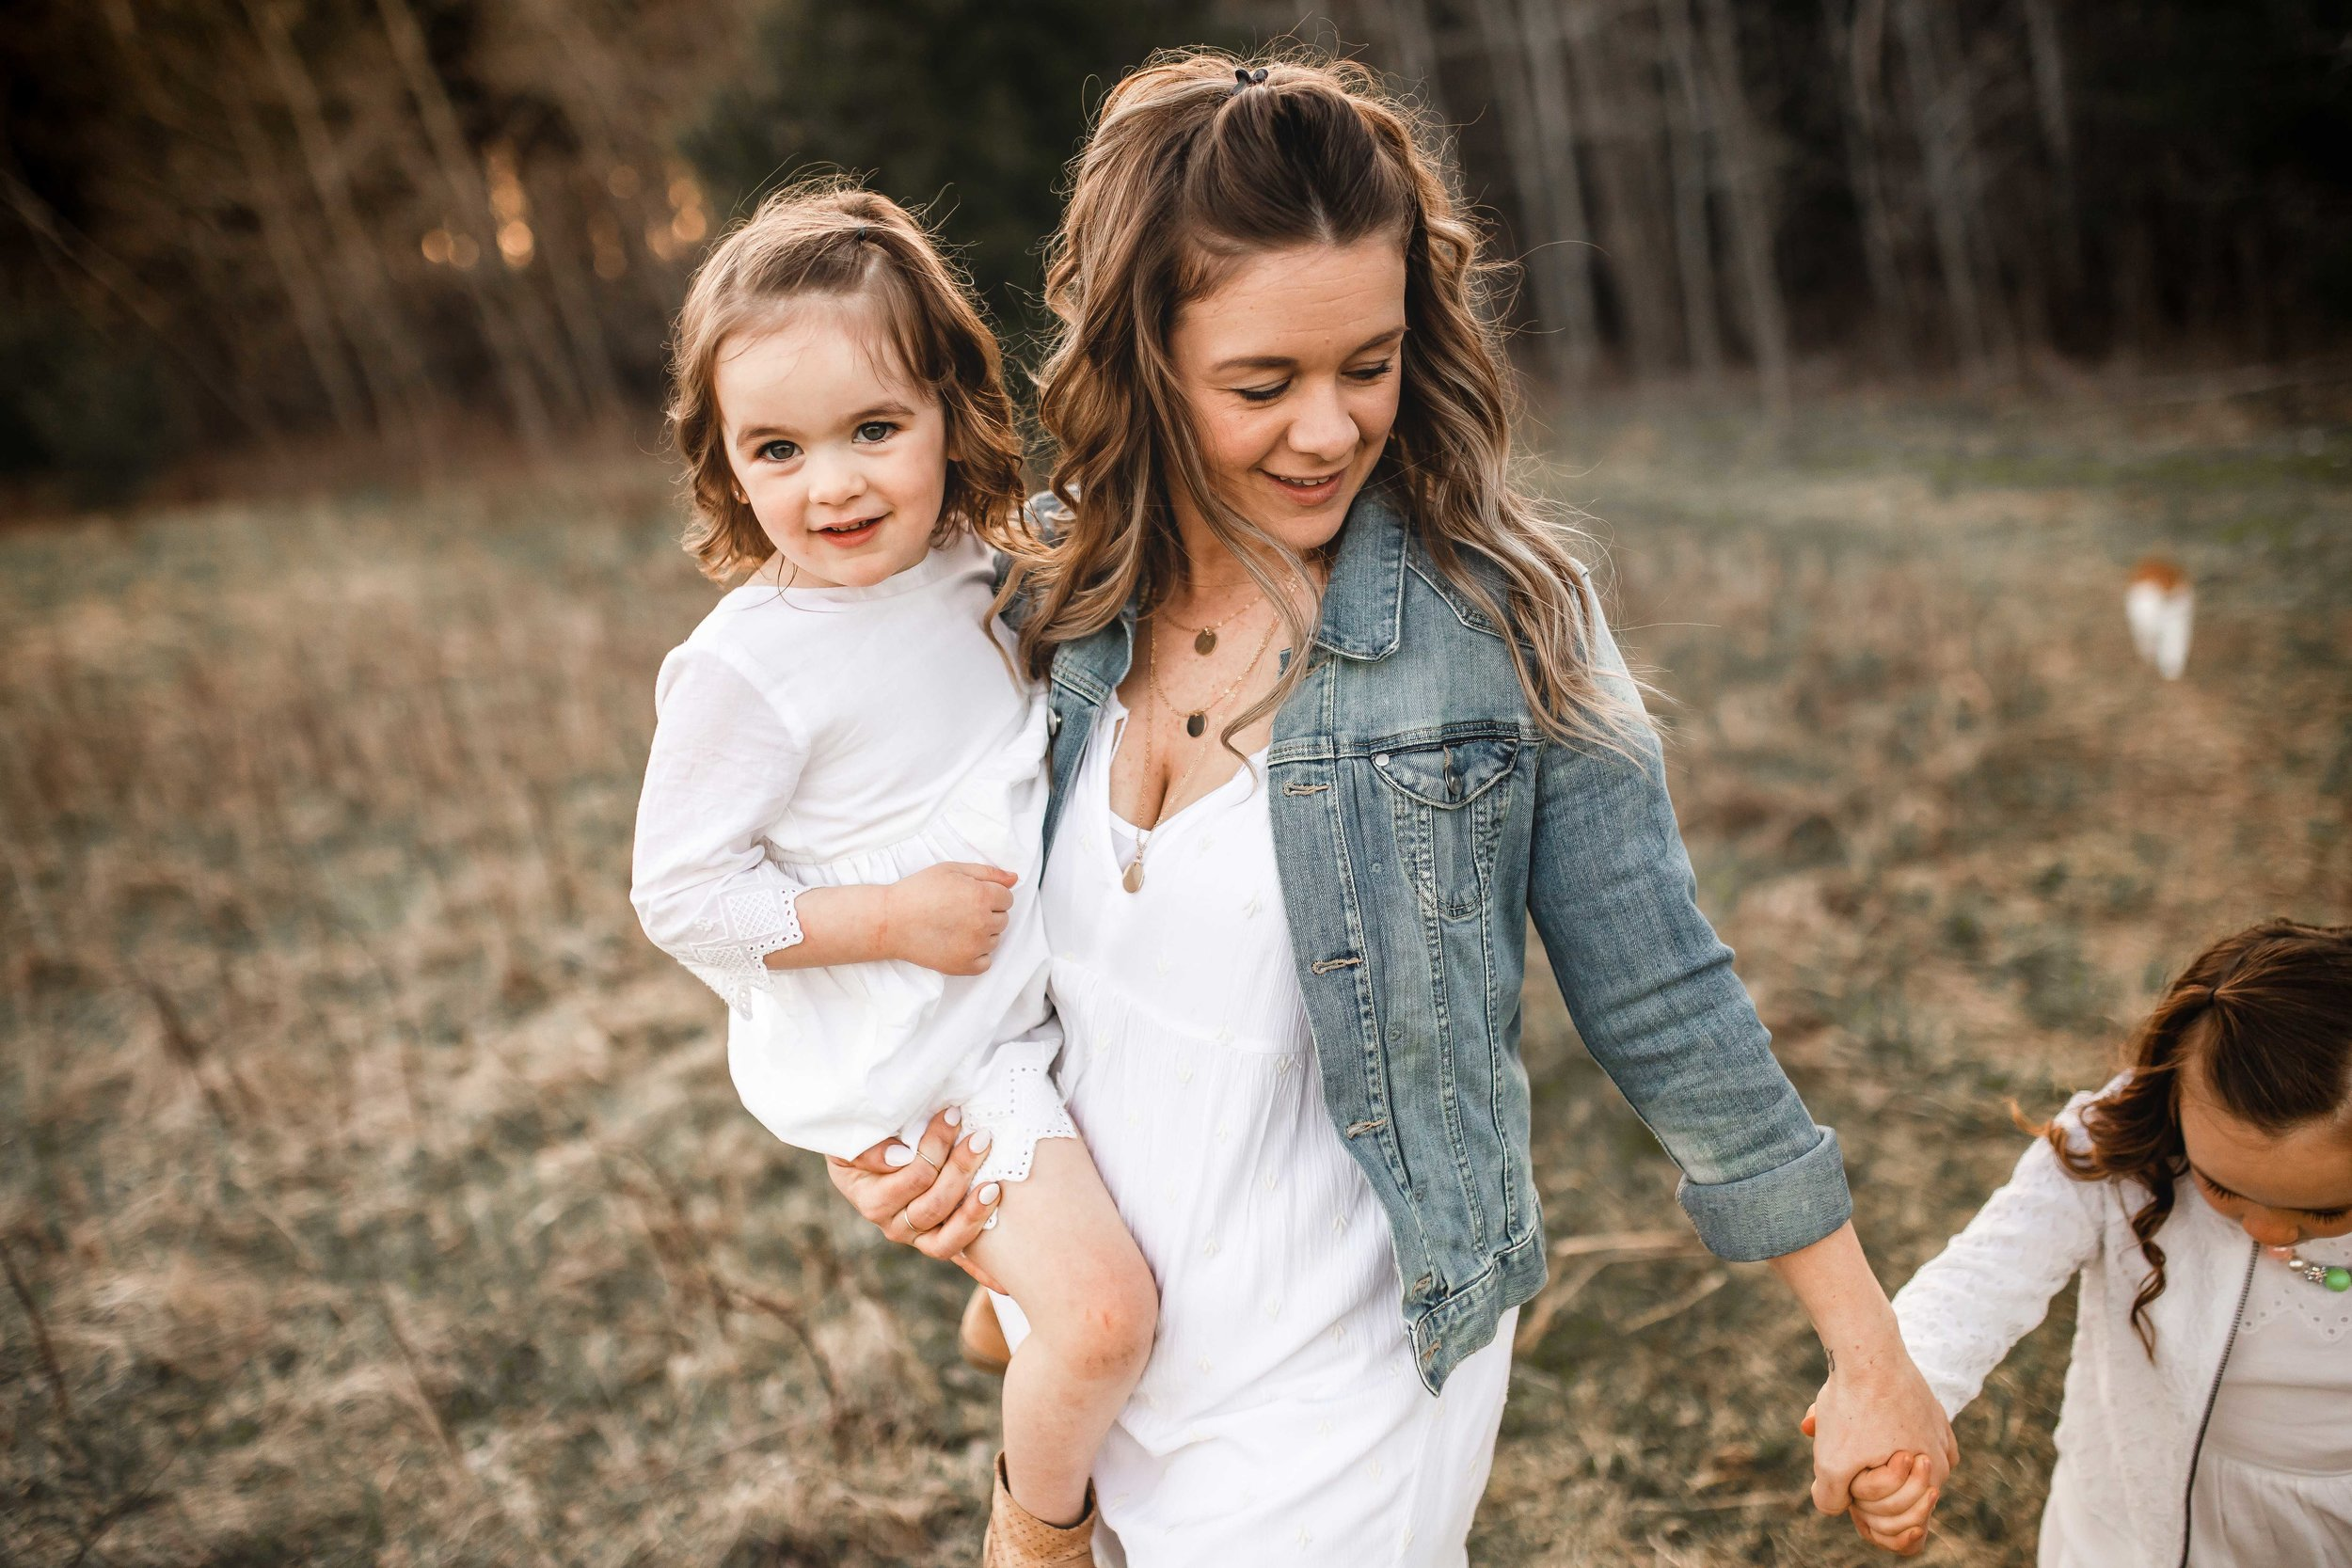 Amy-D-Photography--Family-Photography--Mom-and-Daughter-Session--Mothers-Day-Session--Mom-Photos--Family-Photos--Mom-and-Children-Session--Golden-Hour-Session-94.jpg